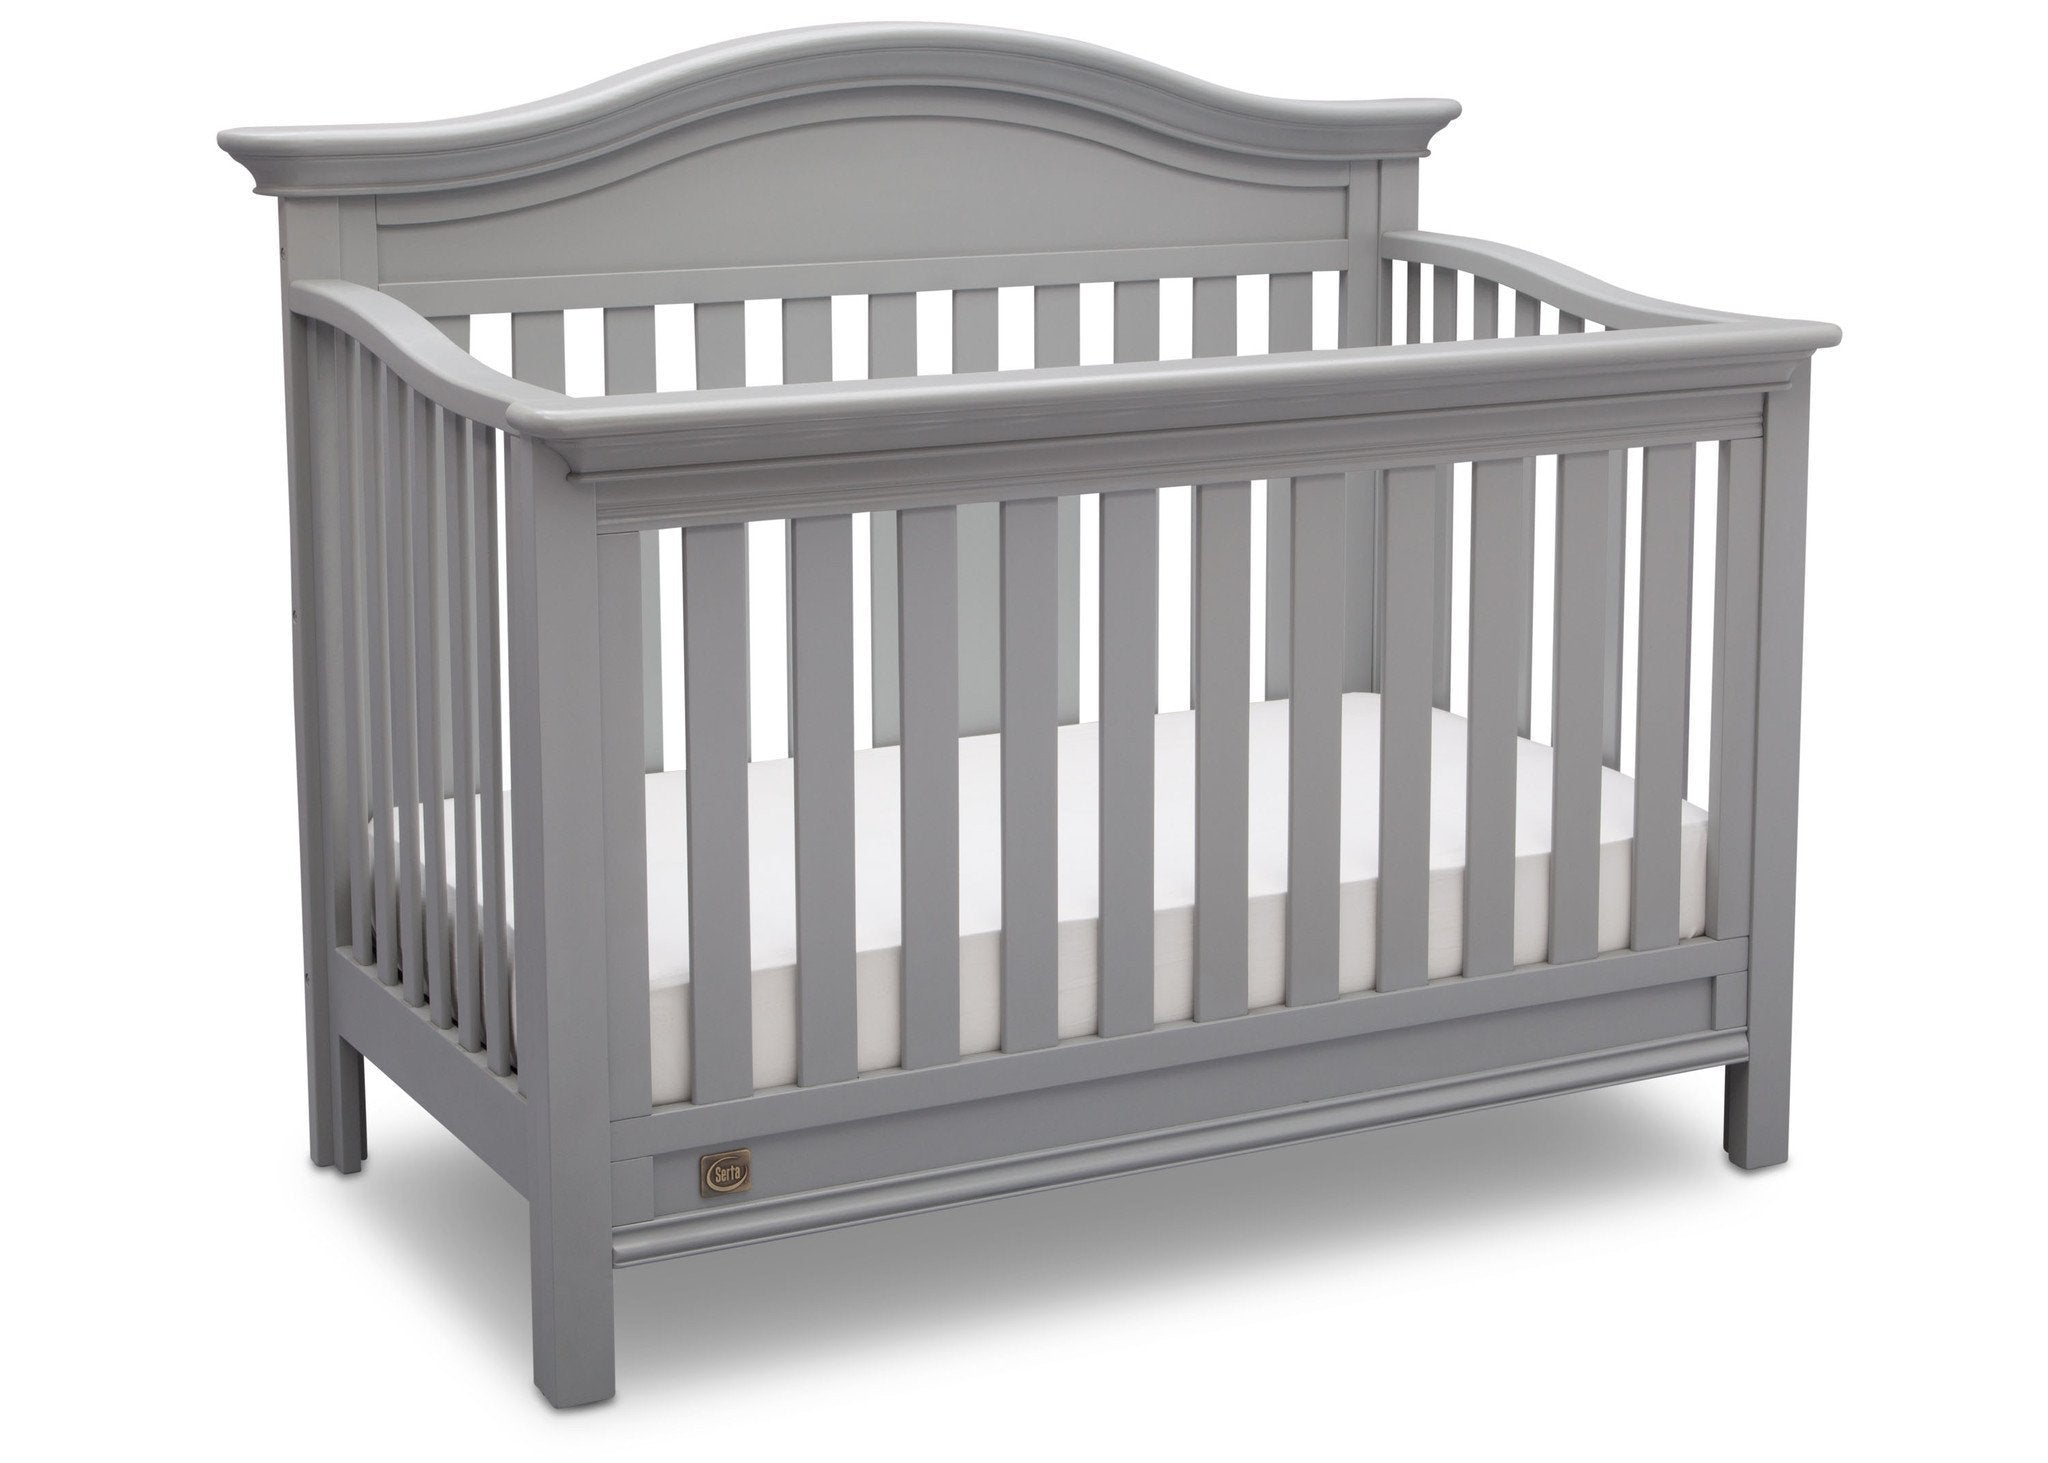 Serta Grey (026) Banbury 4-in-1 Convertible Crib, Right View a2a